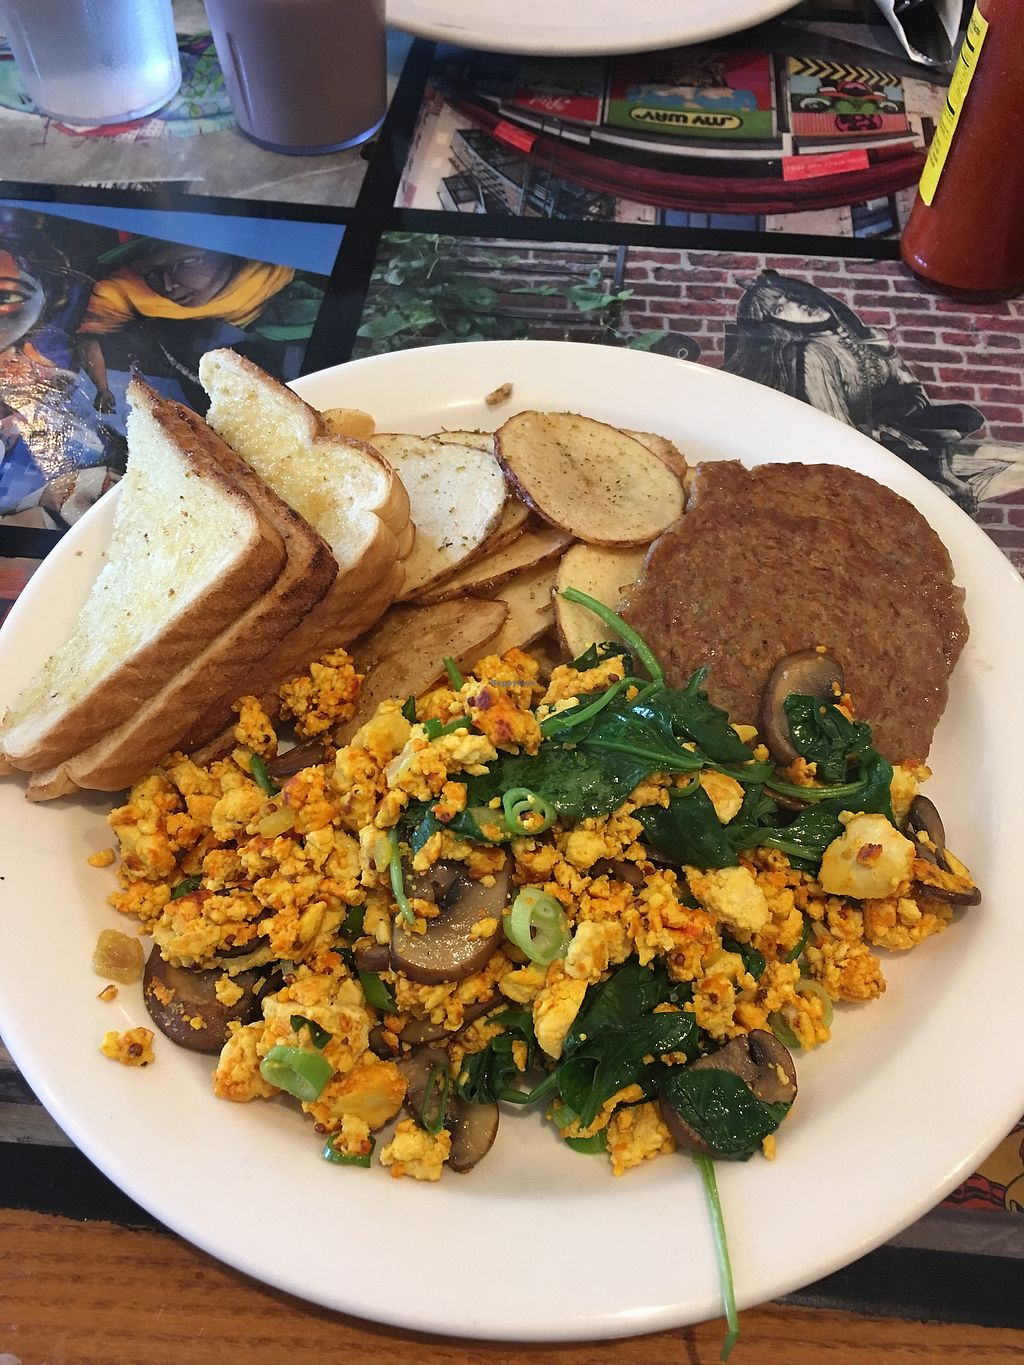 "Photo of Allston Diner  by <a href=""/members/profile/allstonvegan"">allstonvegan</a> <br/>The Ultimate Breakfast <br/> September 24, 2017  - <a href='/contact/abuse/image/36512/307806'>Report</a>"